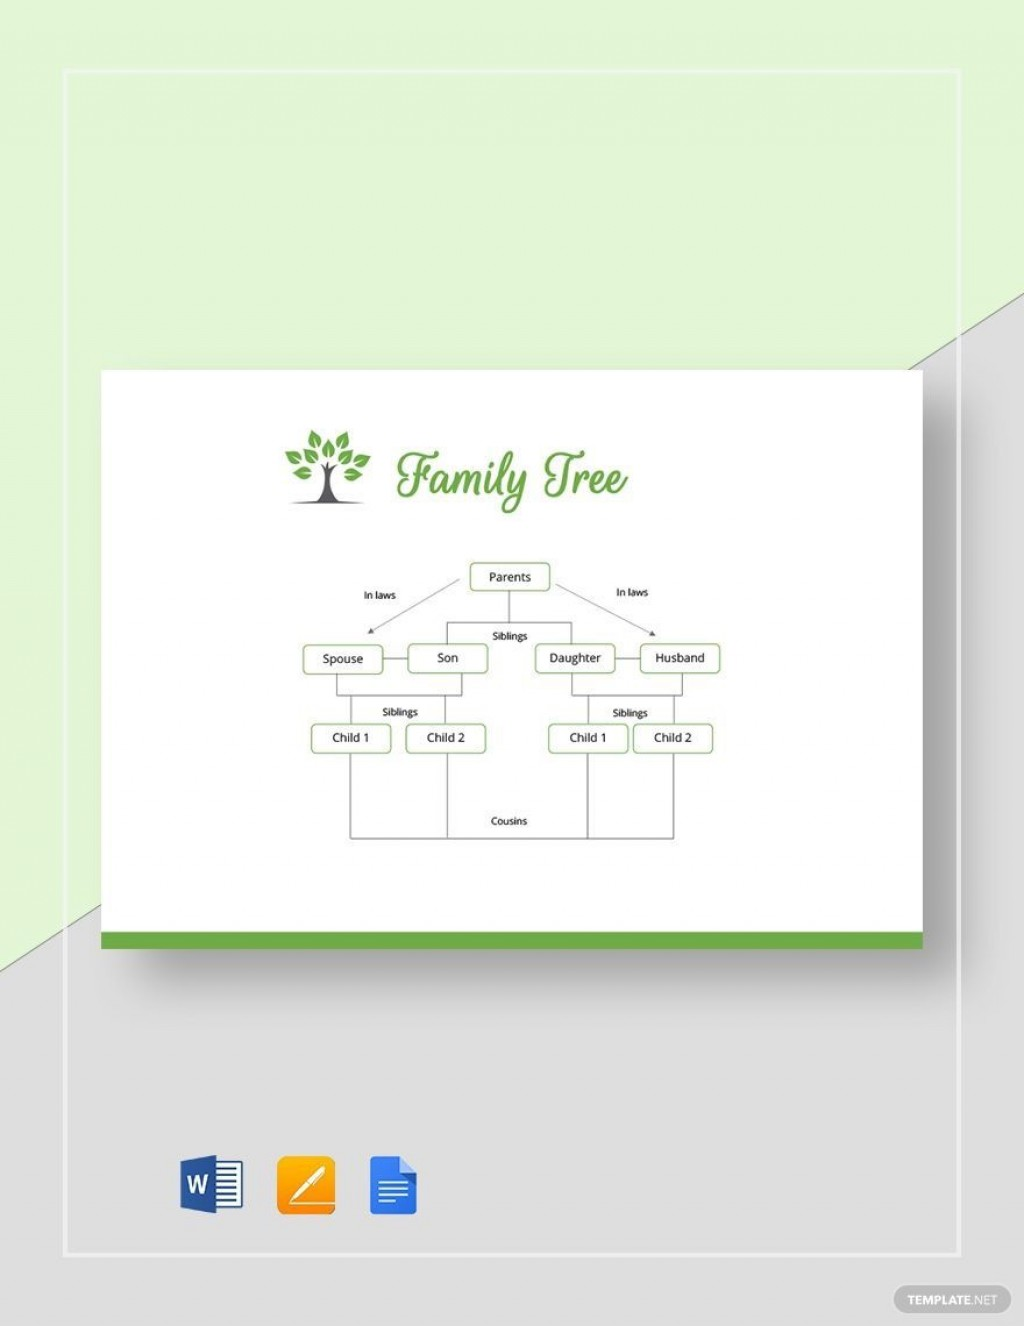 002 Surprising Family Tree Template Google Doc Image  Docs I There A On Free EditableLarge